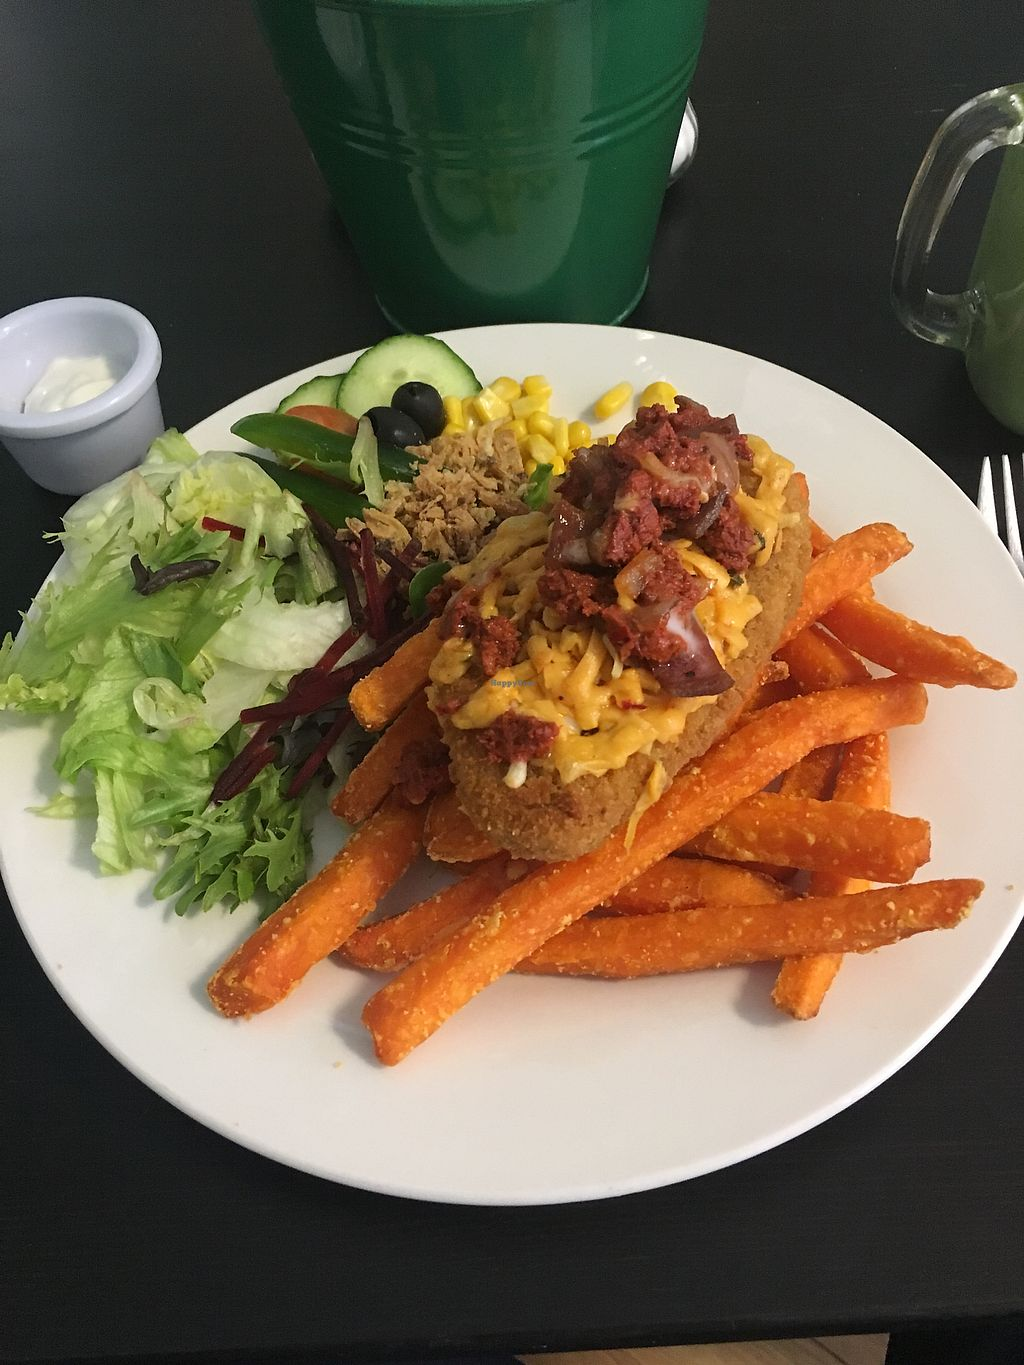 """Photo of The Green Room  by <a href=""""/members/profile/Nyle.95"""">Nyle.95</a> <br/>Hot Shot Parmo & sweet potato fries  <br/> February 14, 2018  - <a href='/contact/abuse/image/73773/359265'>Report</a>"""